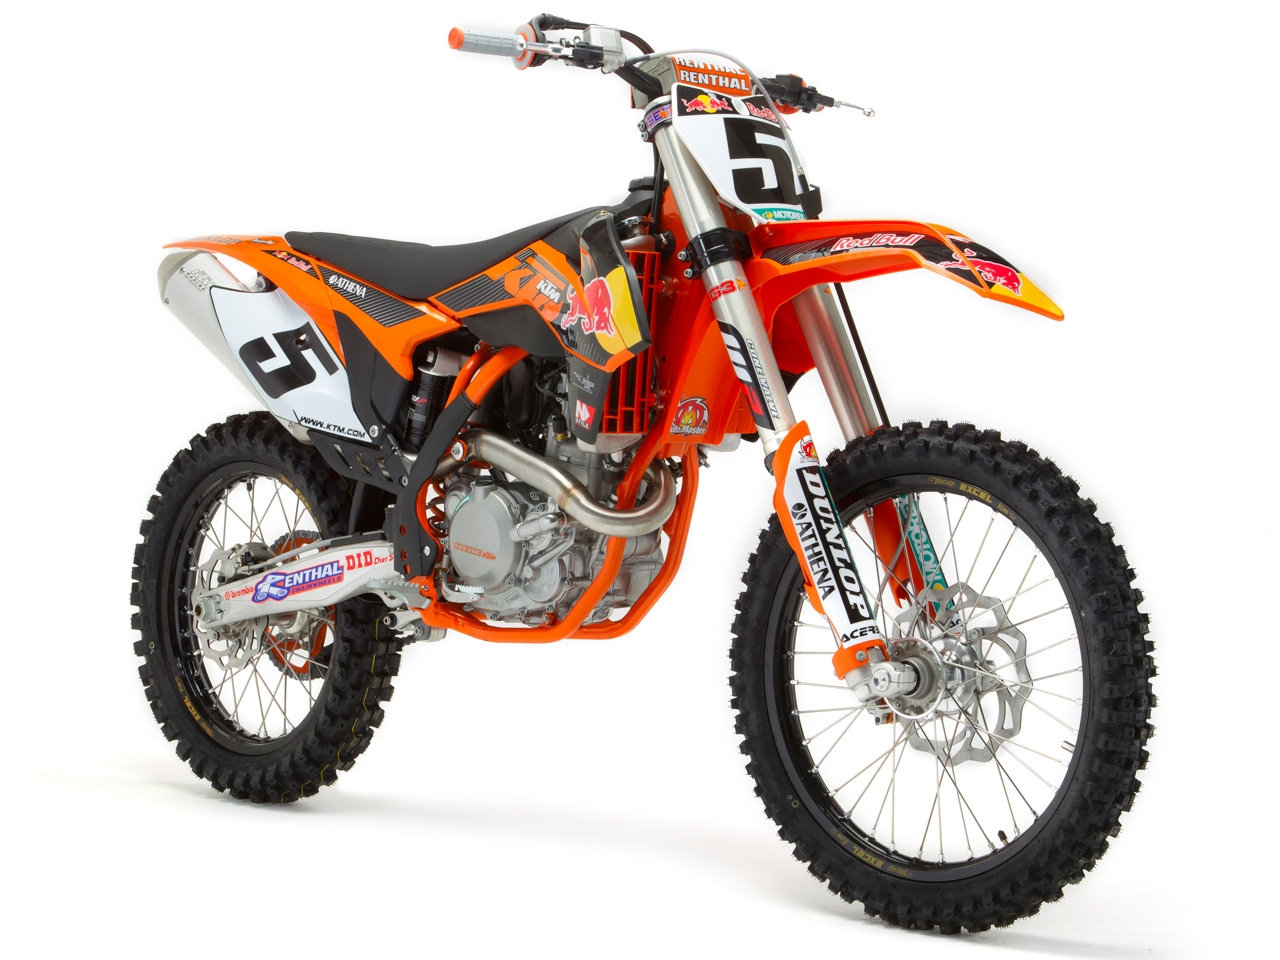 KTM Shows the 2013 450 SX-F Factory Edition